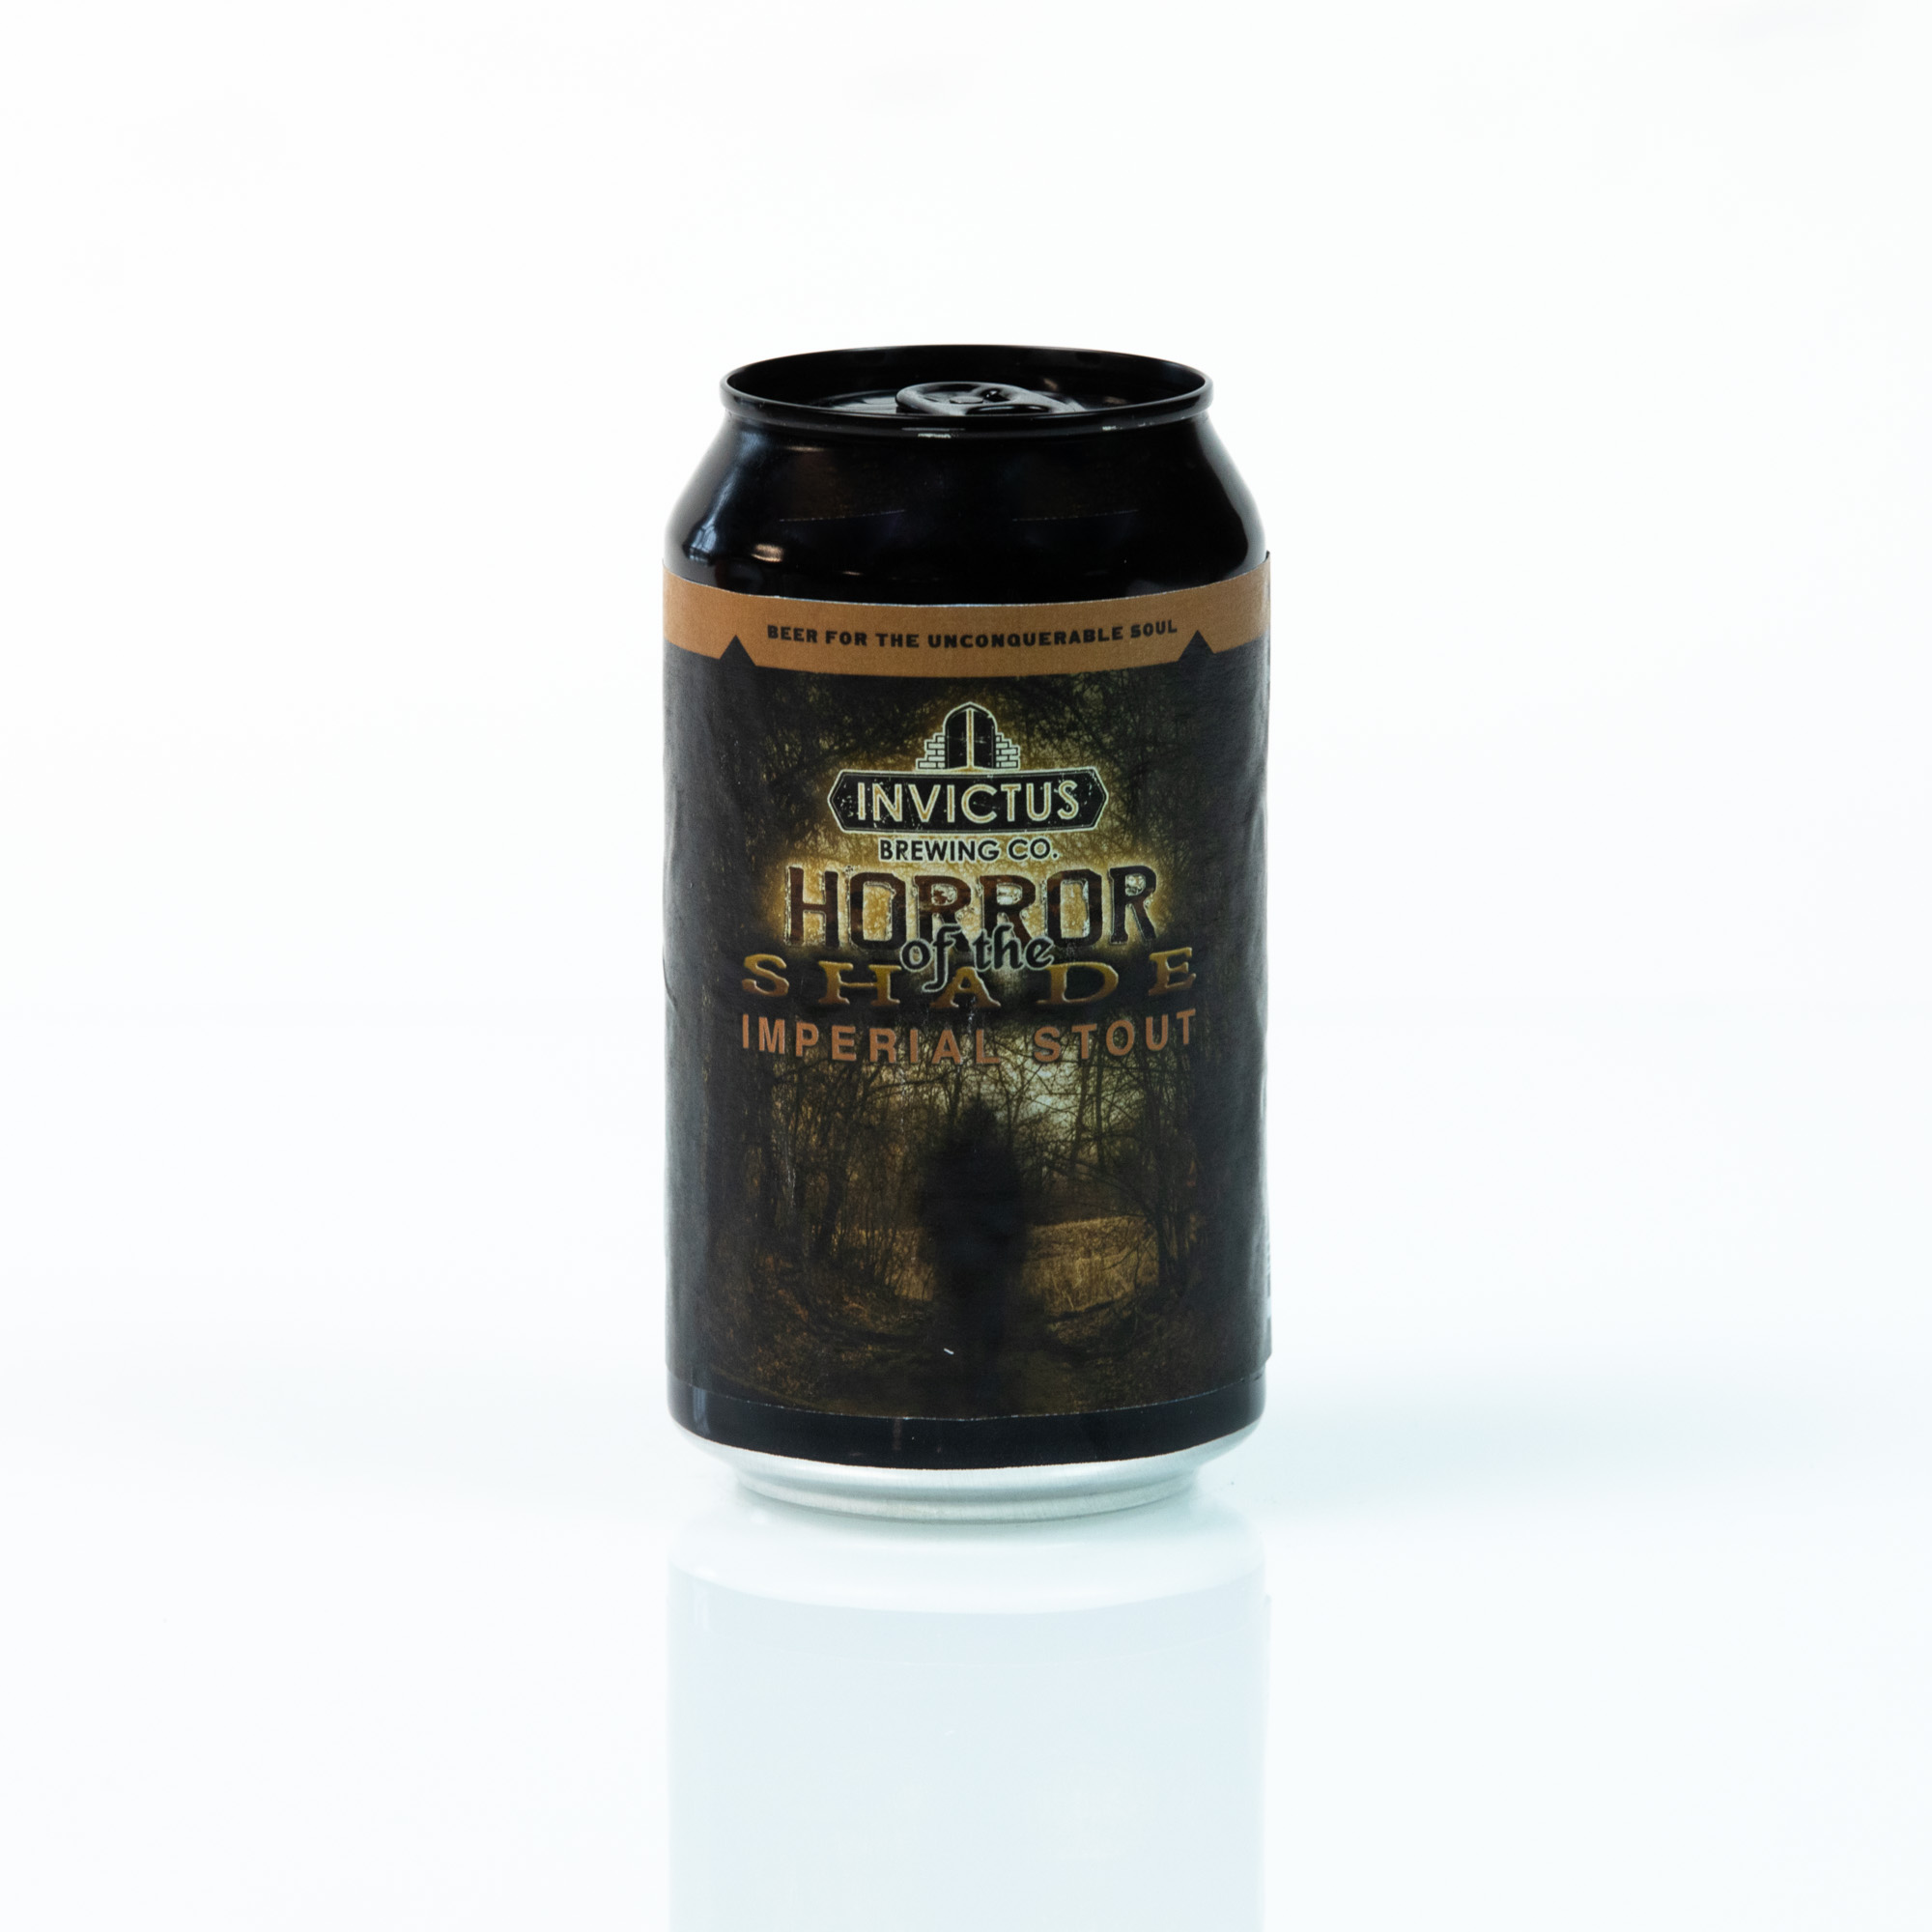 Horror of the Shade Imperial Stout